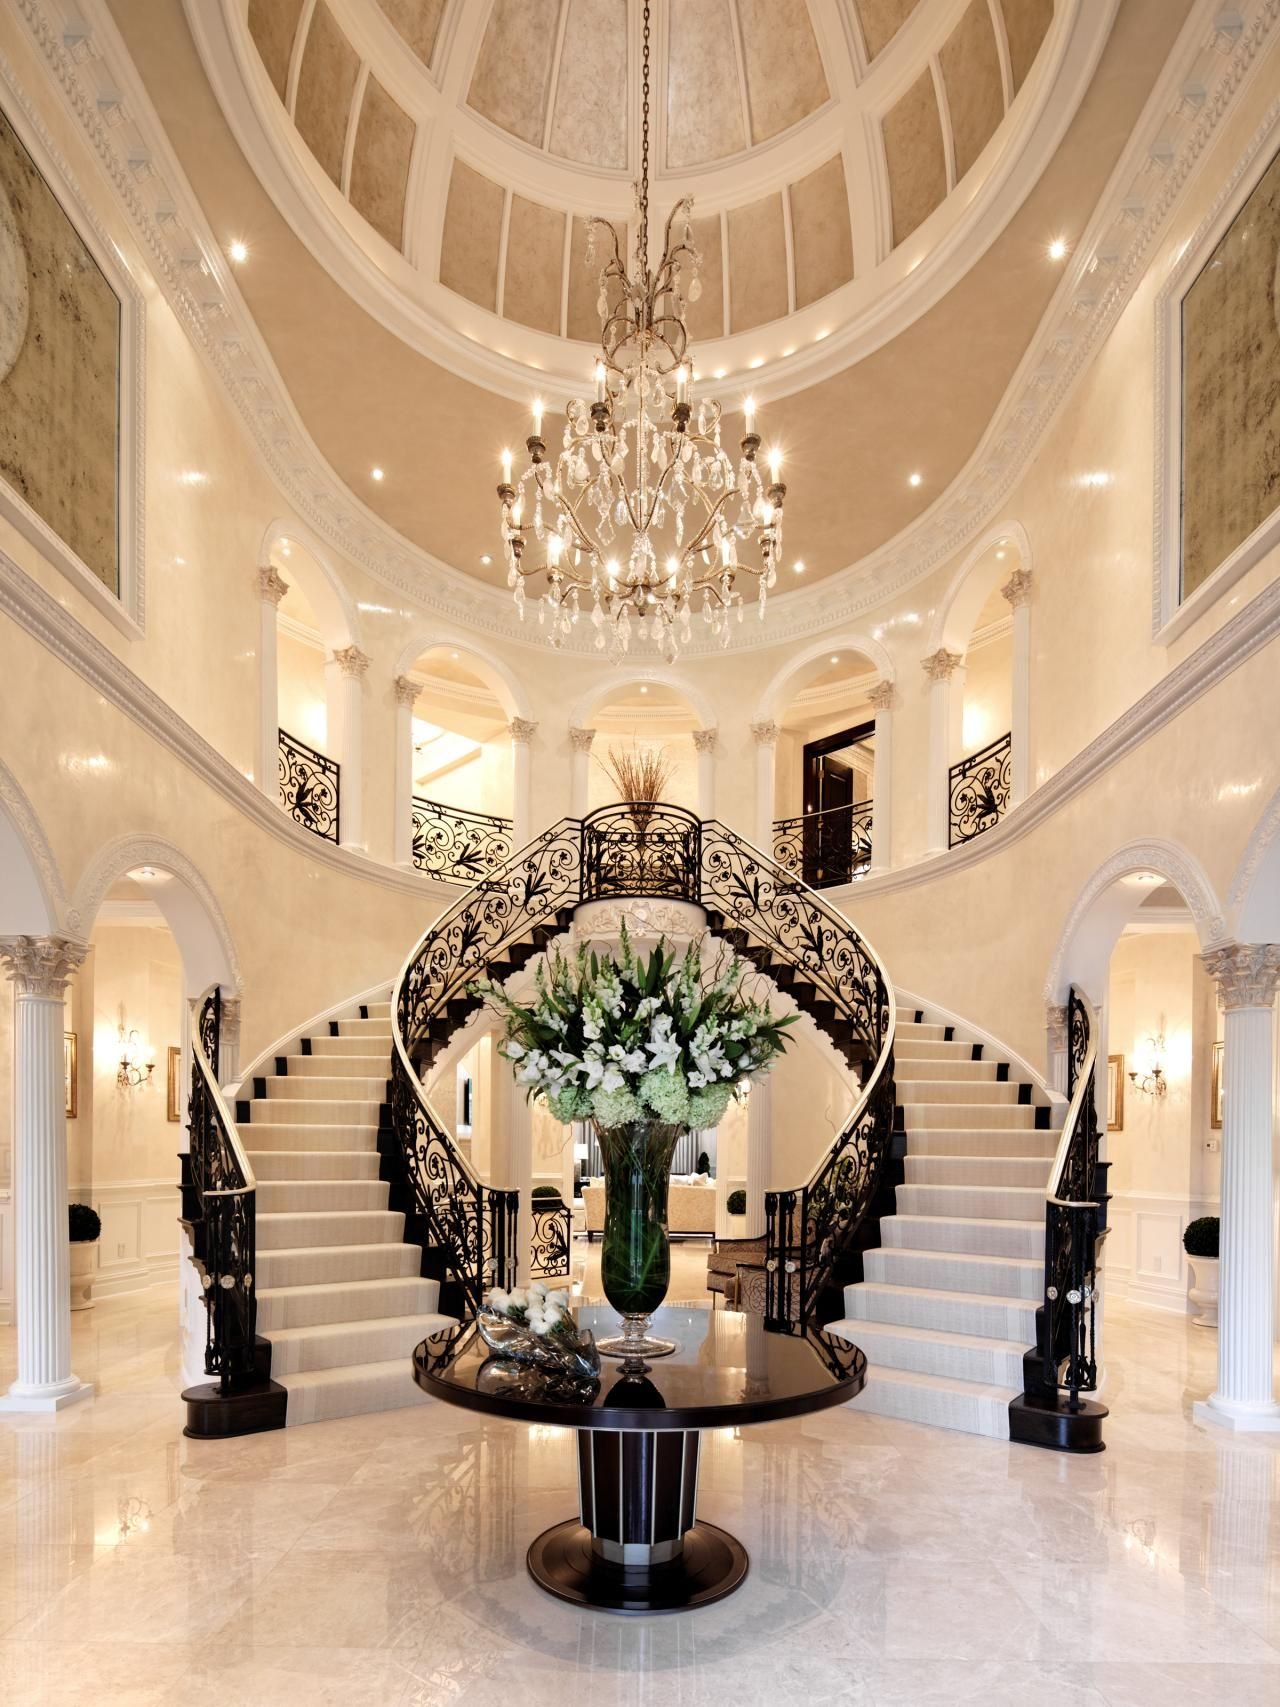 A Spacious Foyer With A Domed Ceiling And Double Staircase Makes A Grand Entrance To This Home An Elegant Double Staircase White Staircase Elegant Chandeliers